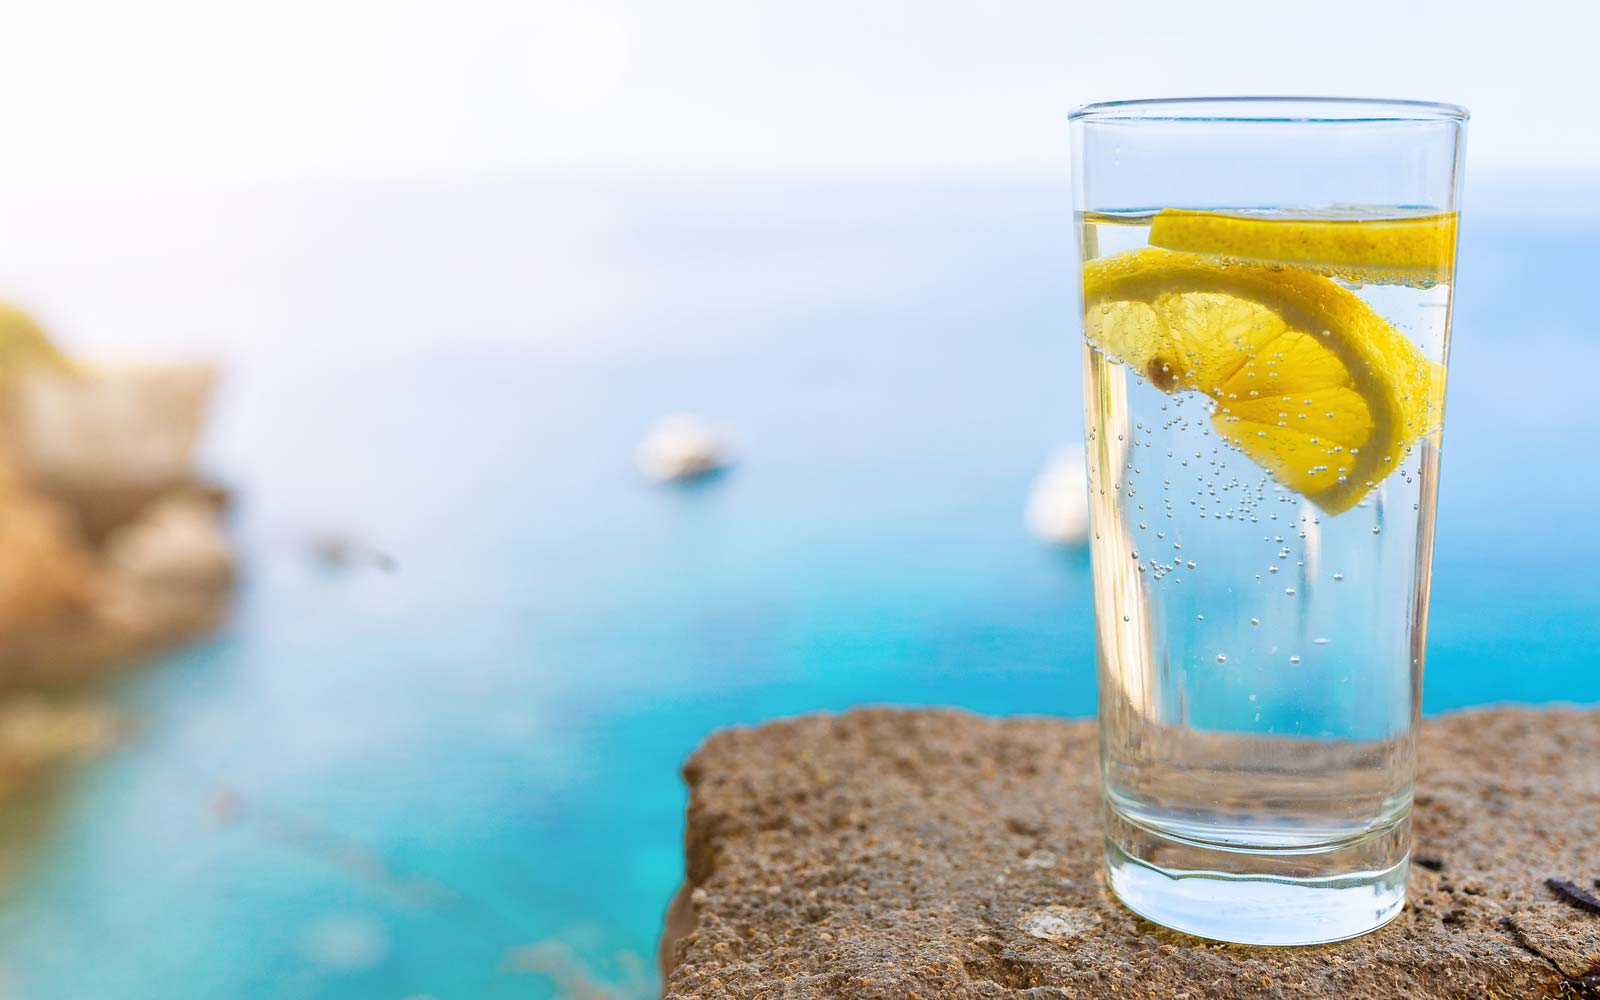 drinking glass with cold carbonated water or soft drink and lemon slice against blue sea and sky